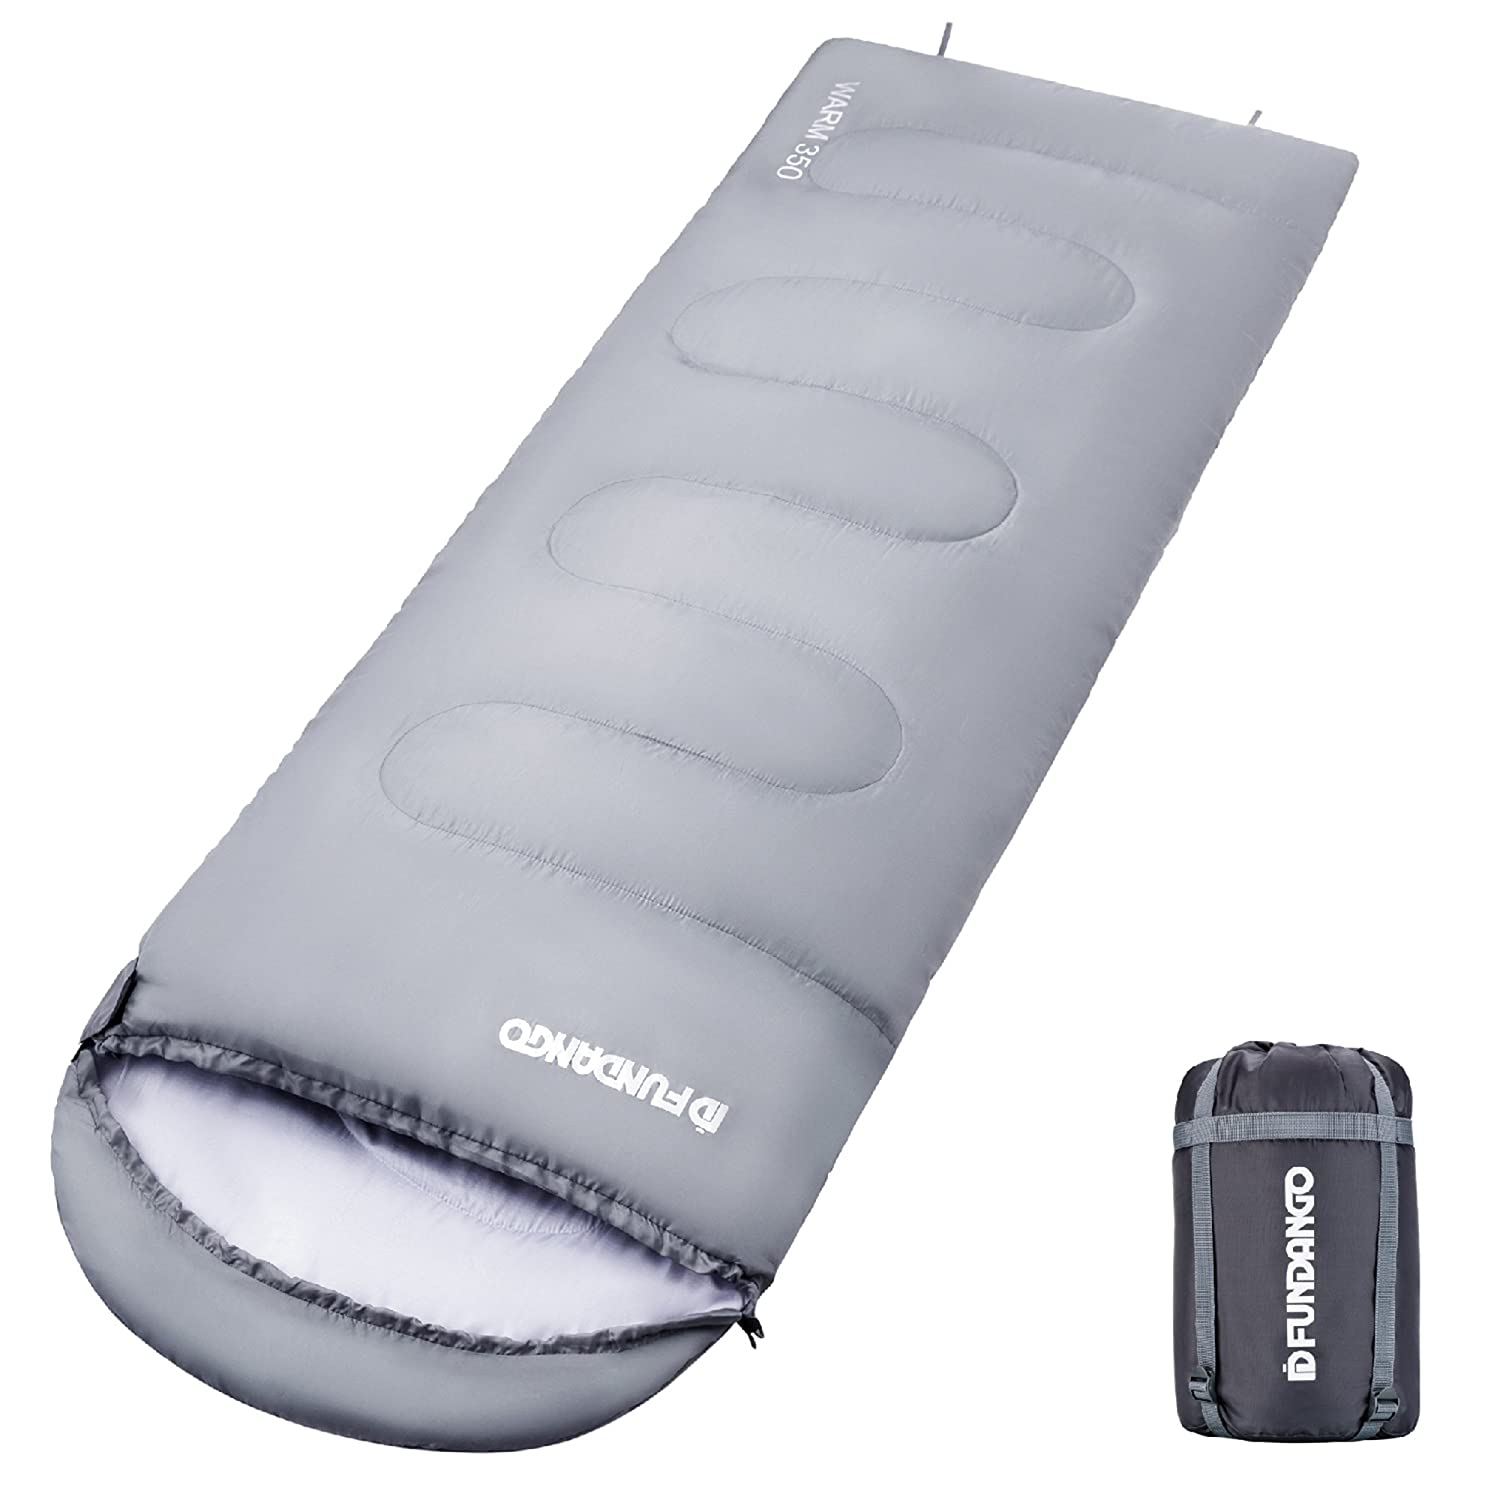 FUNDANGO Comfort 200 Oversize 74.8 33.1inches Portable Multipurpose, Durable, Warm Weather Sleeping Bag, Camping or Home